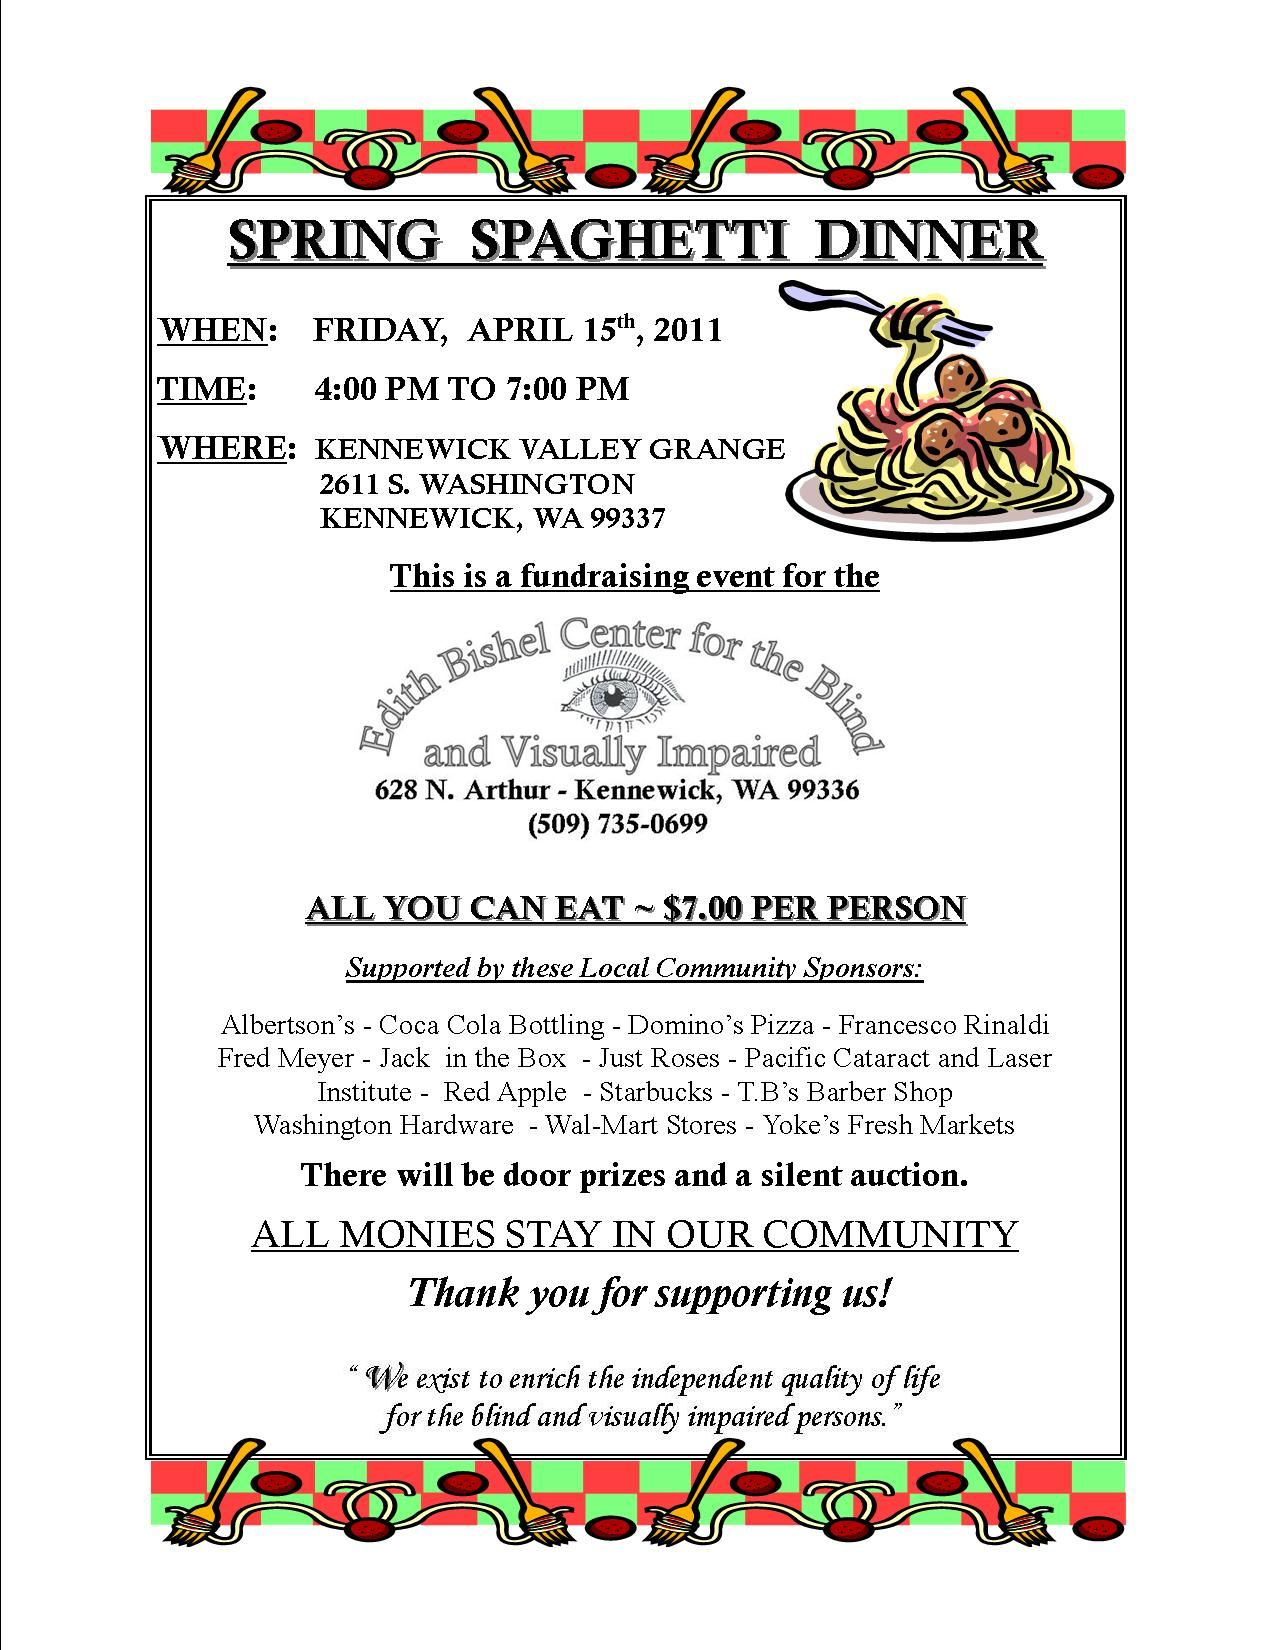 dinner fundraiser april 15 2011 spring spaghetti dinner fundraiser fundraising ideas. Black Bedroom Furniture Sets. Home Design Ideas